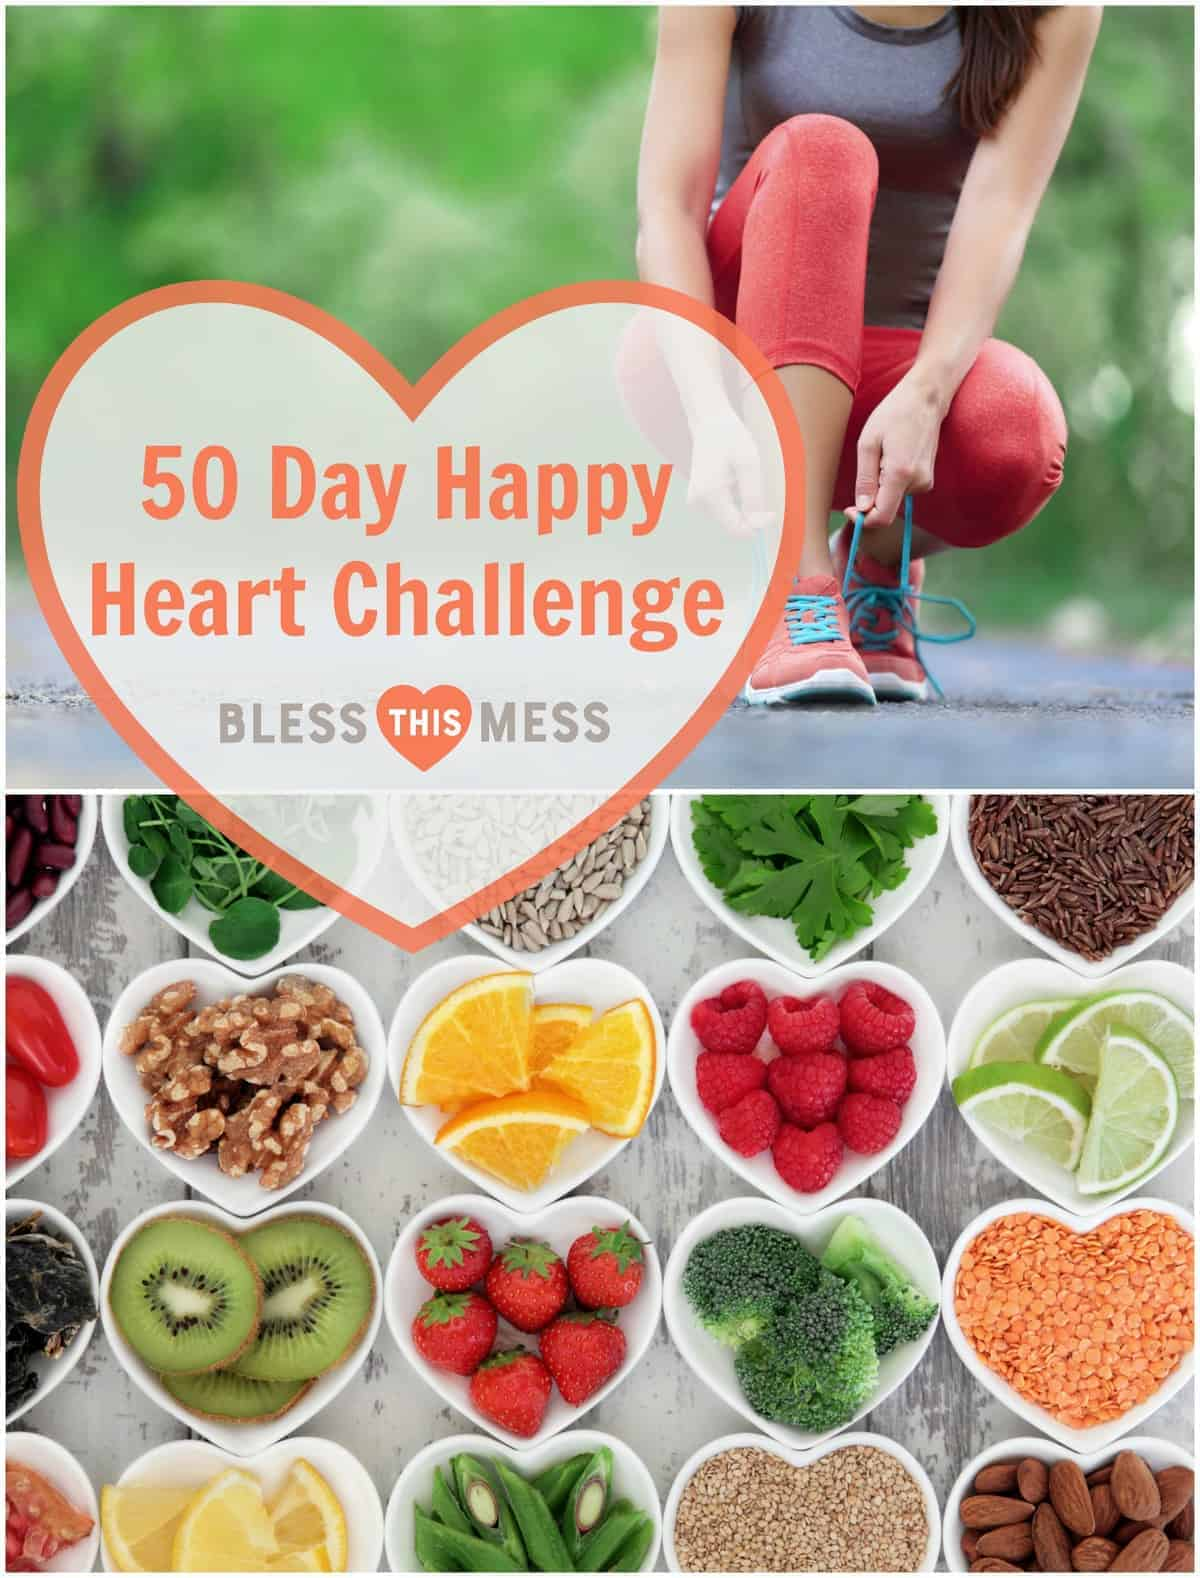 Join me in The Happy Heart Challenge - 50 Days to a Happier, Healthier You! Printable PDF to help you track your goals and progress are included.